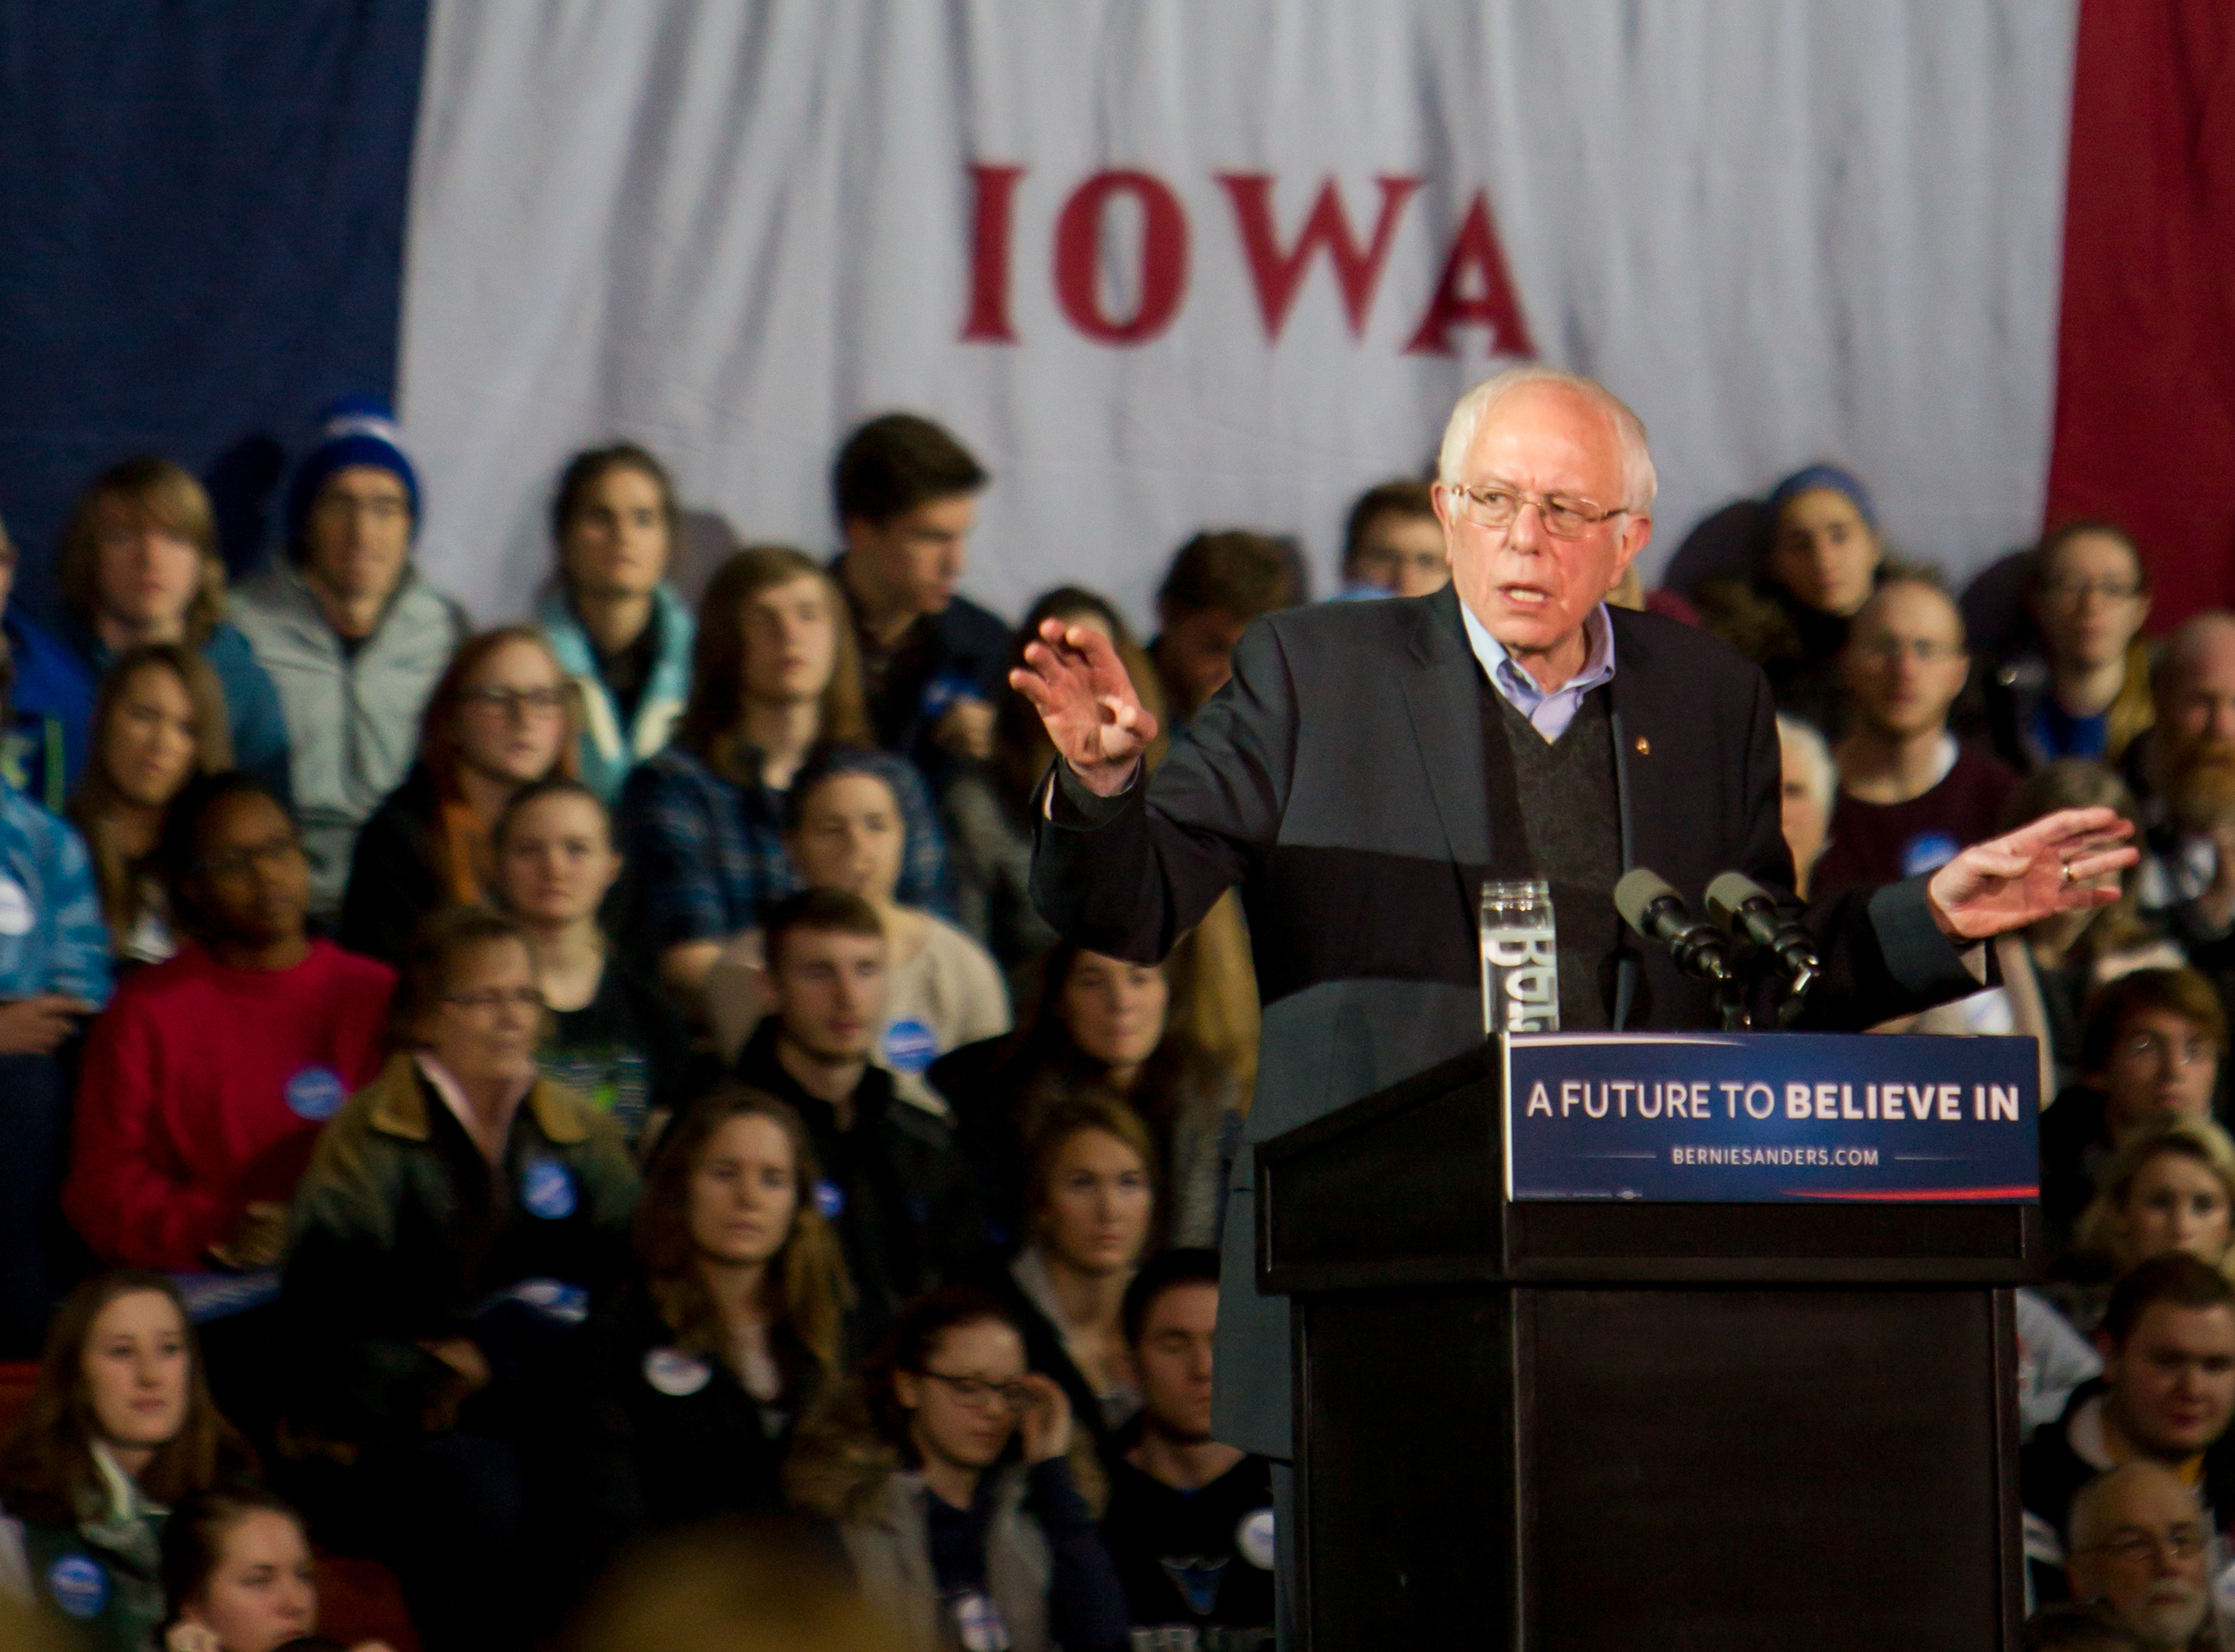 On Sunday, January 24th 2016, Bernie Sanders addressed an energetic cowd of over 2,000 faculty, staff, students and Decorah community members in the Luther College main gym. That rally was part of his last big push to get his message out before the 2016 Iowa caucus taking place the following week. Photo by Aaron Lurth